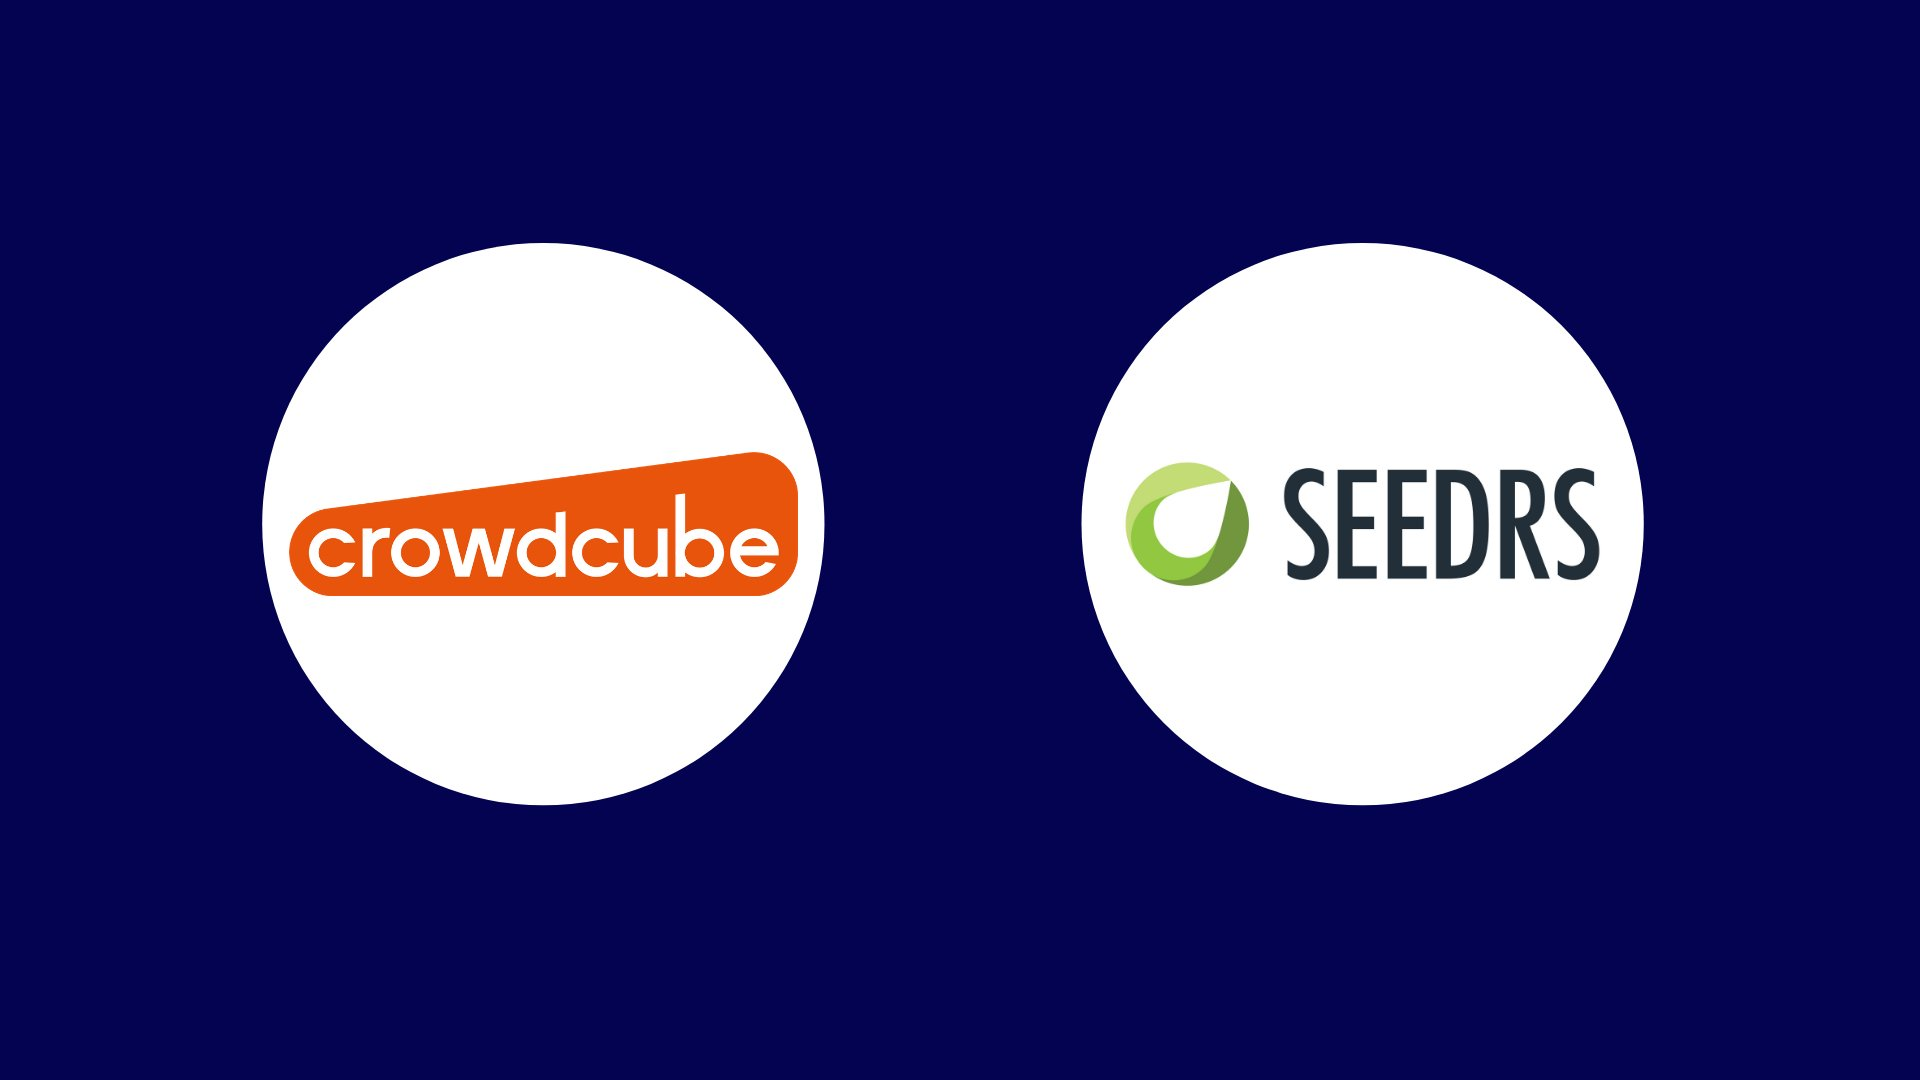 Seedrs and Crowdcube logos